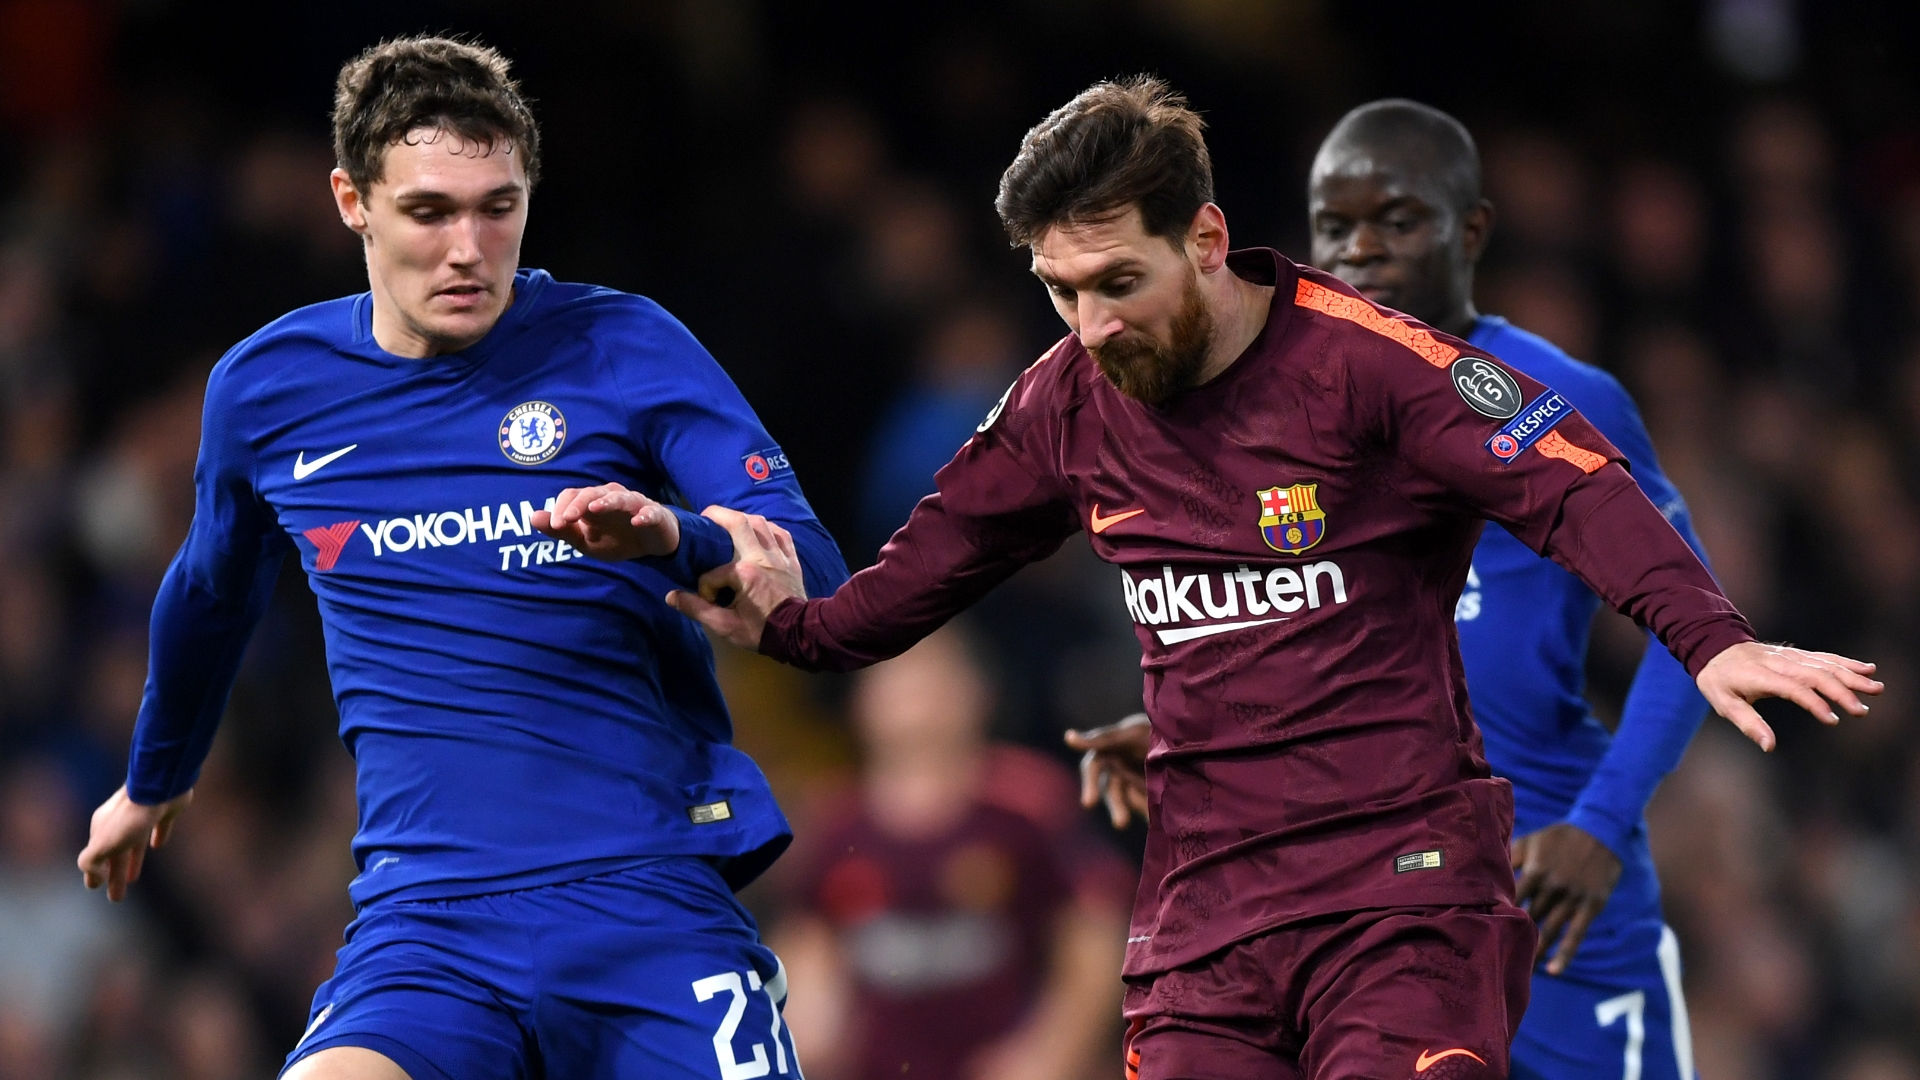 Andreas Chritensen, Lionel Messi, Chelsea vs Barcelona